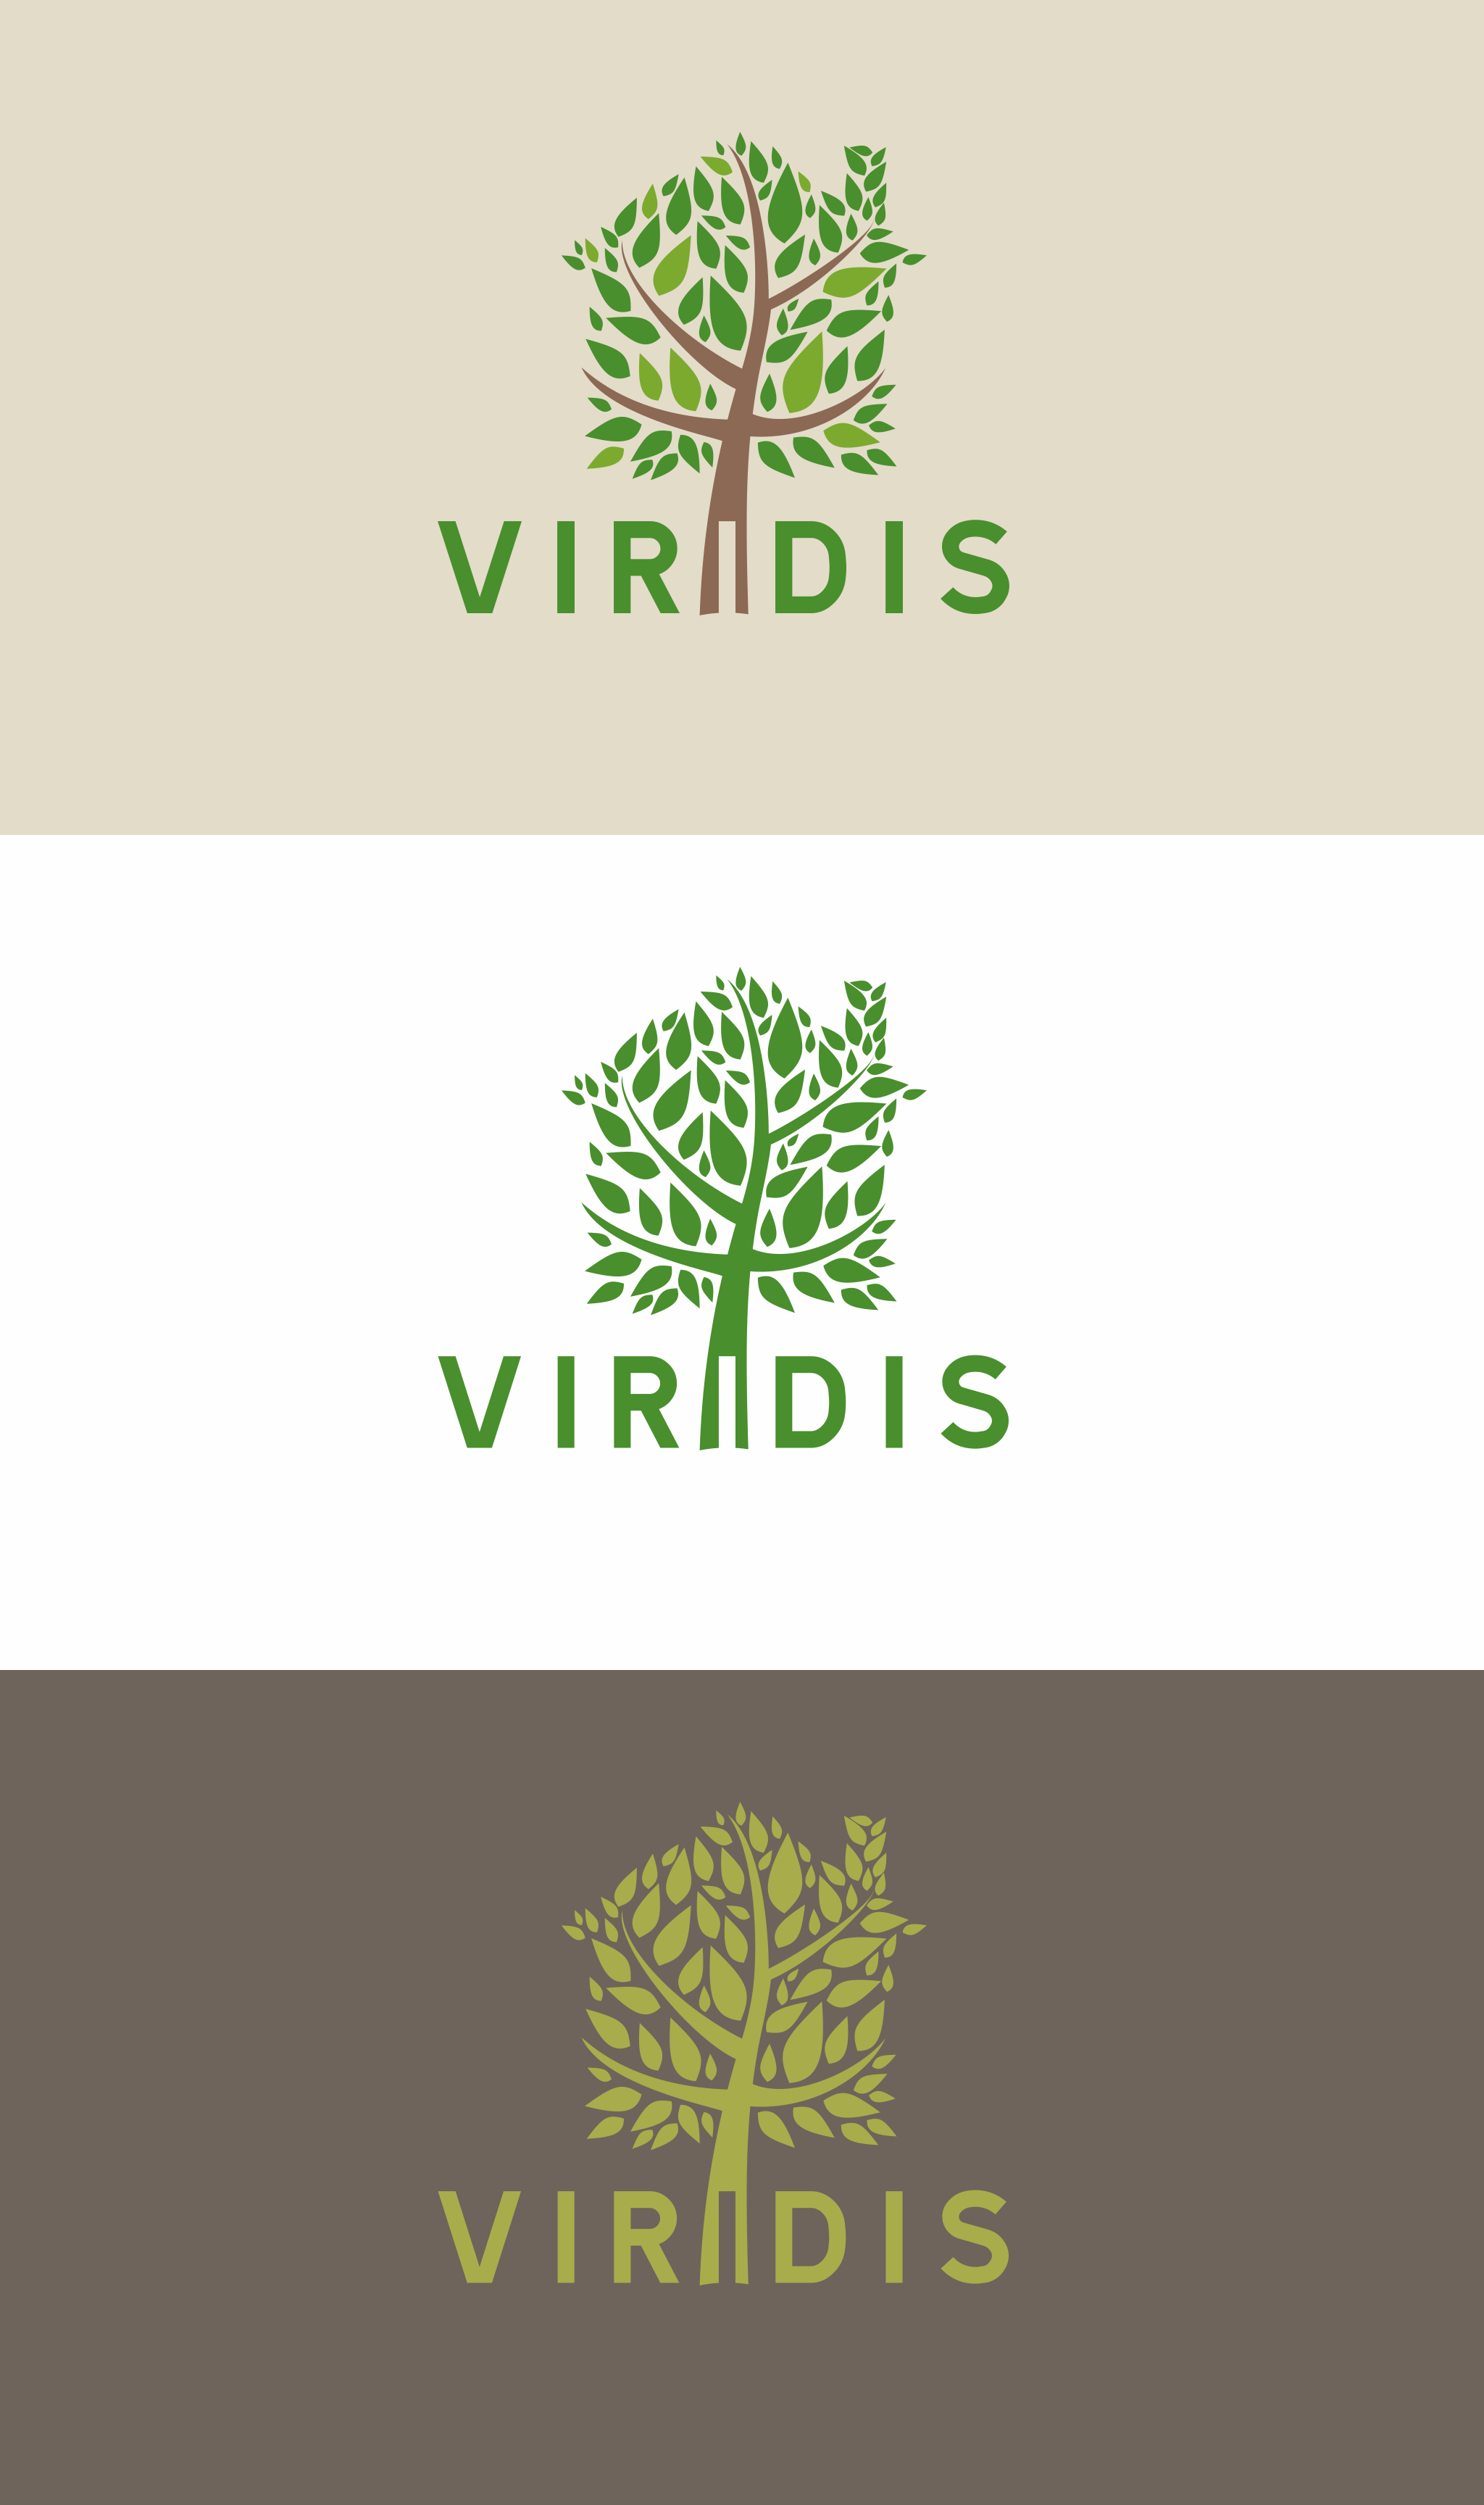 Create A Ruggedly Refined Logo For Virids Landscape Architecture Design 9 By Descience